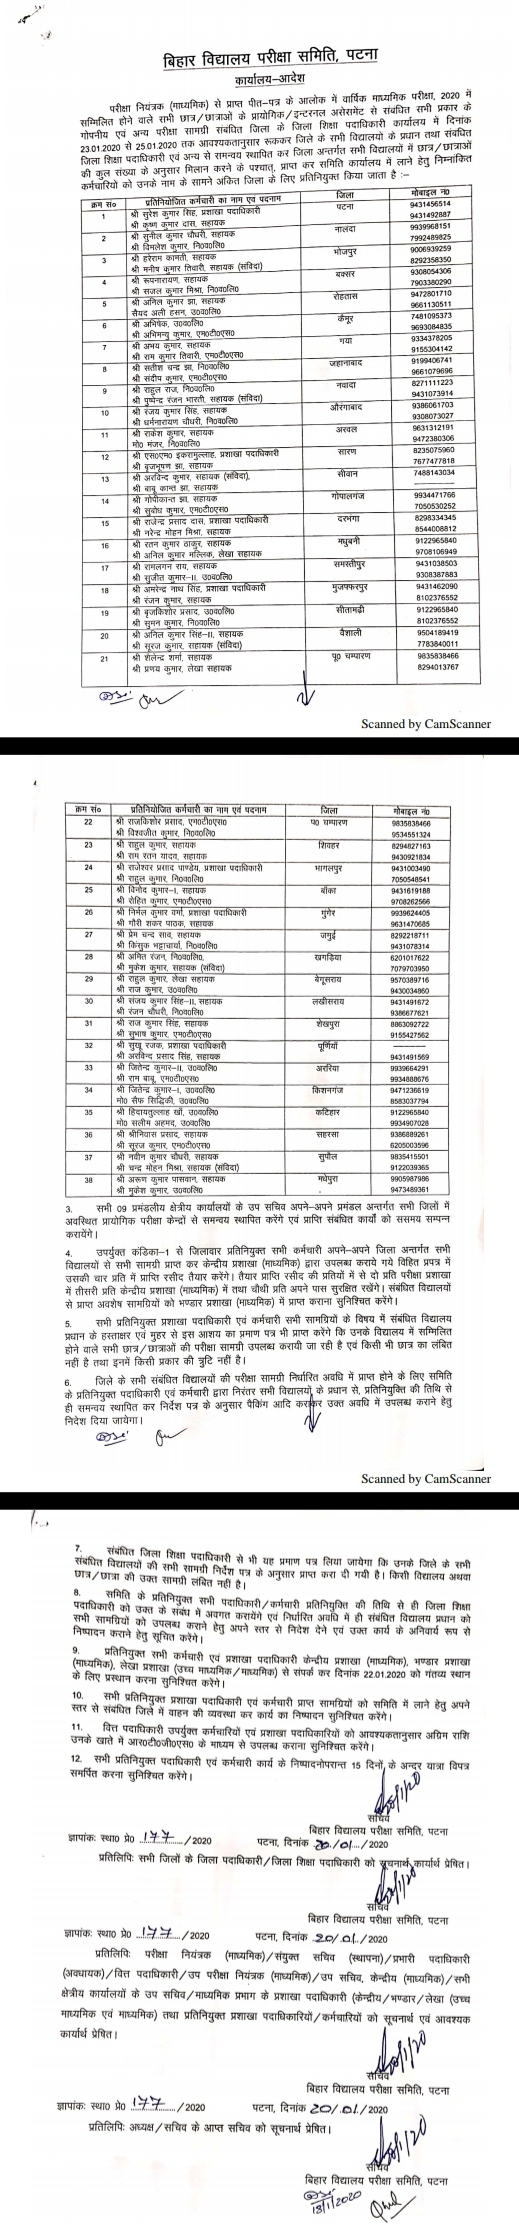 BSEB patna appointed officials to all deo office for collection of matric practical 2020 material